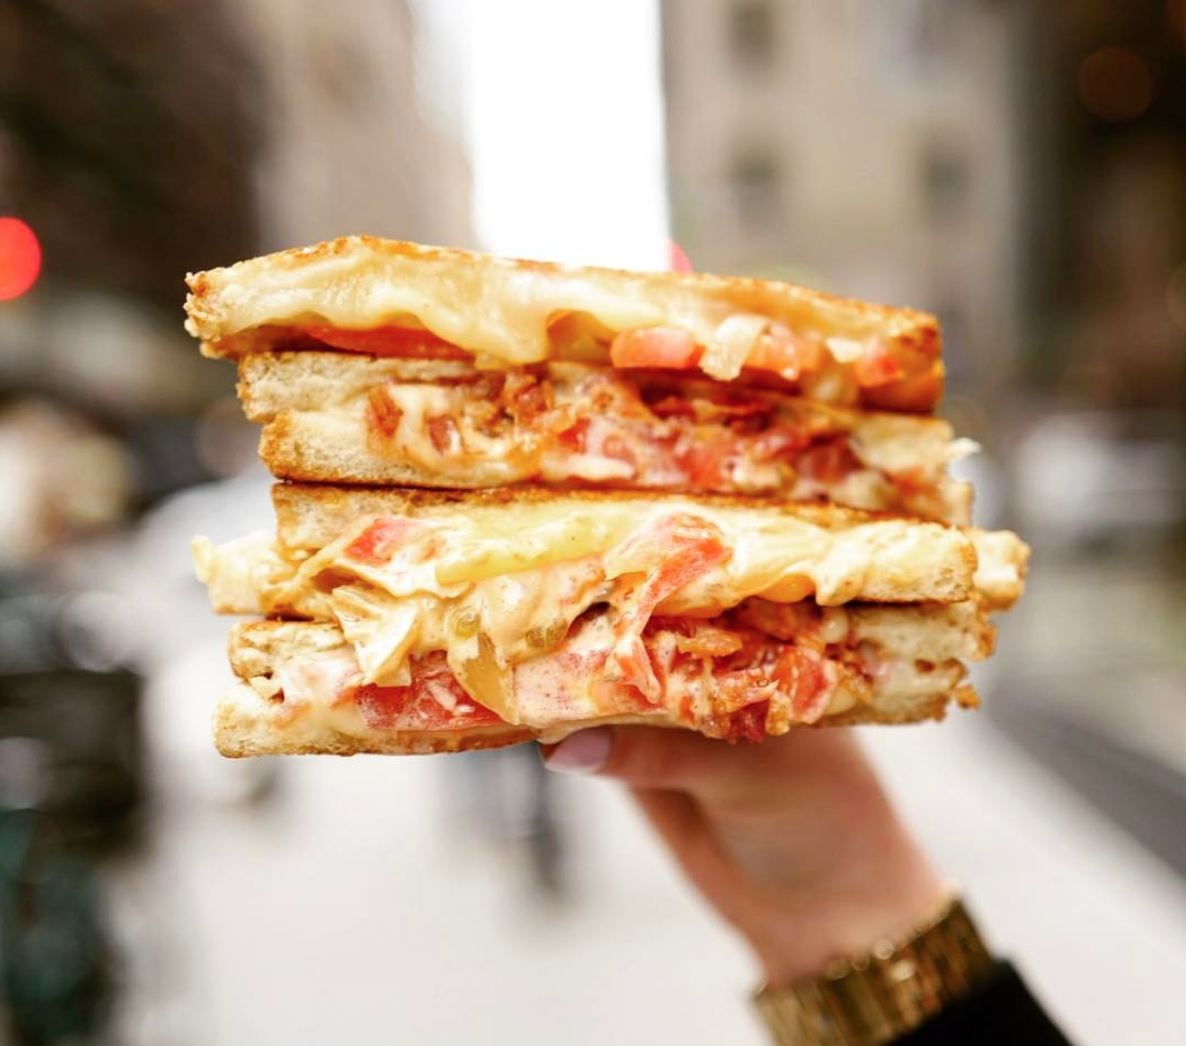 Gorilla Cheese NYC Unique Grilled Cheese Sandwiches